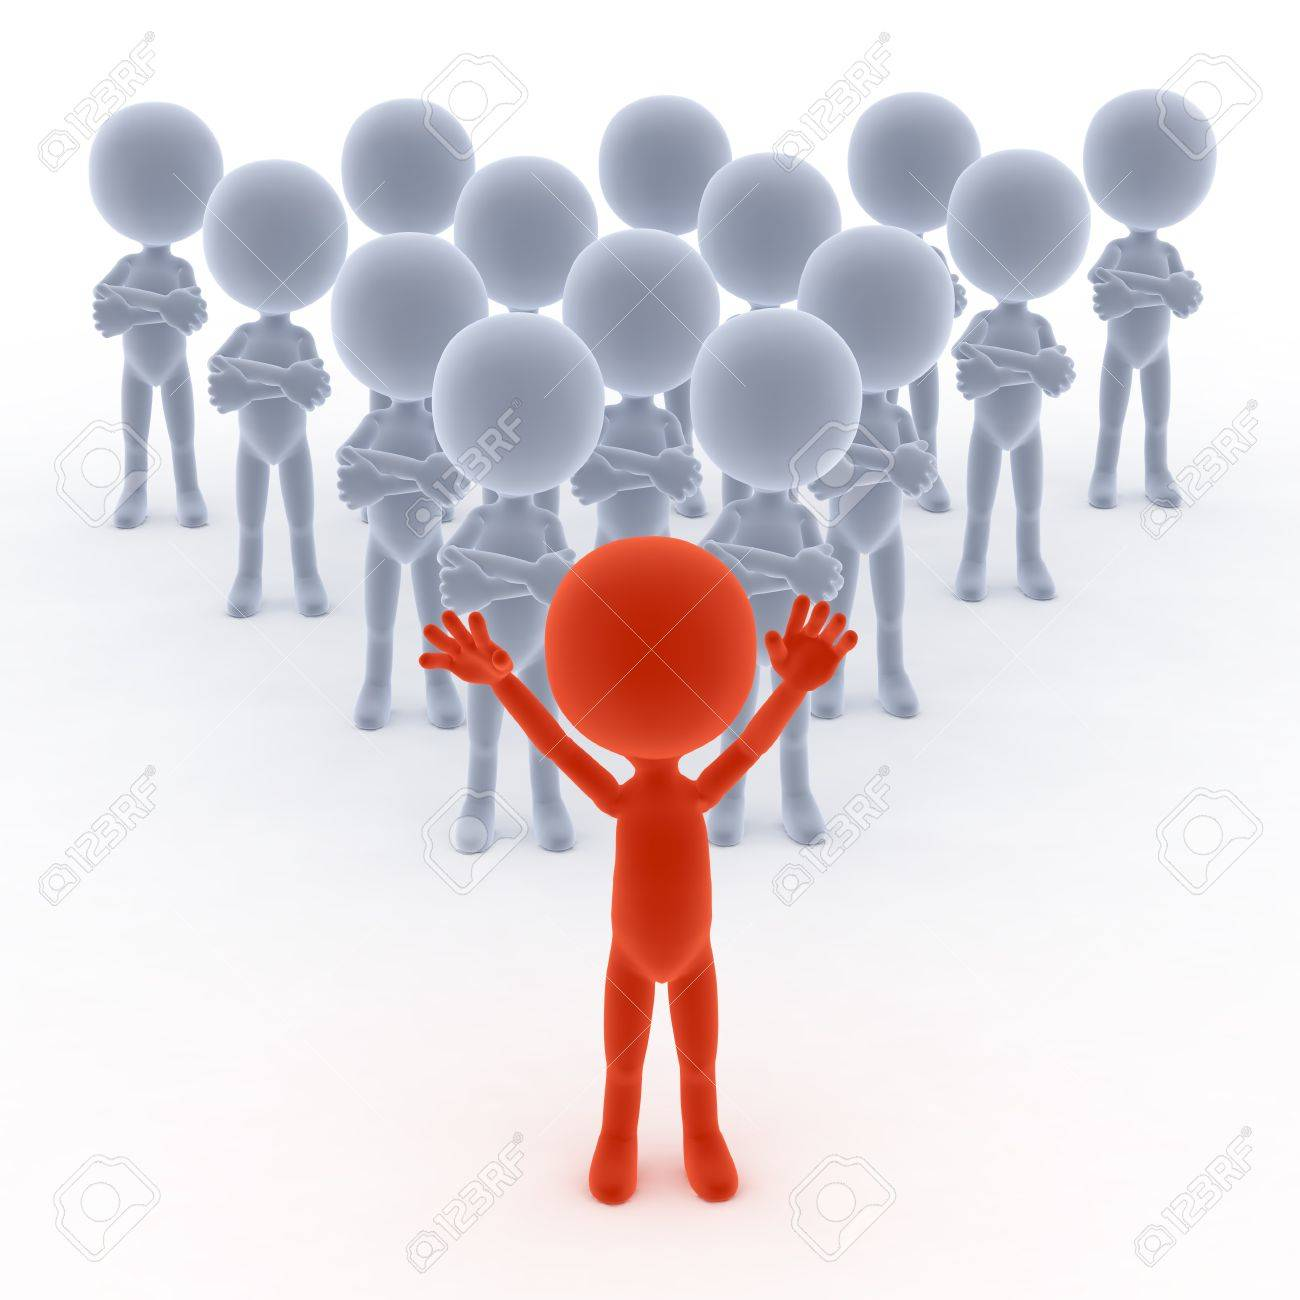 business team leader his people d little humans stock photo business team leader his people 3d little humans stock photo 13150442